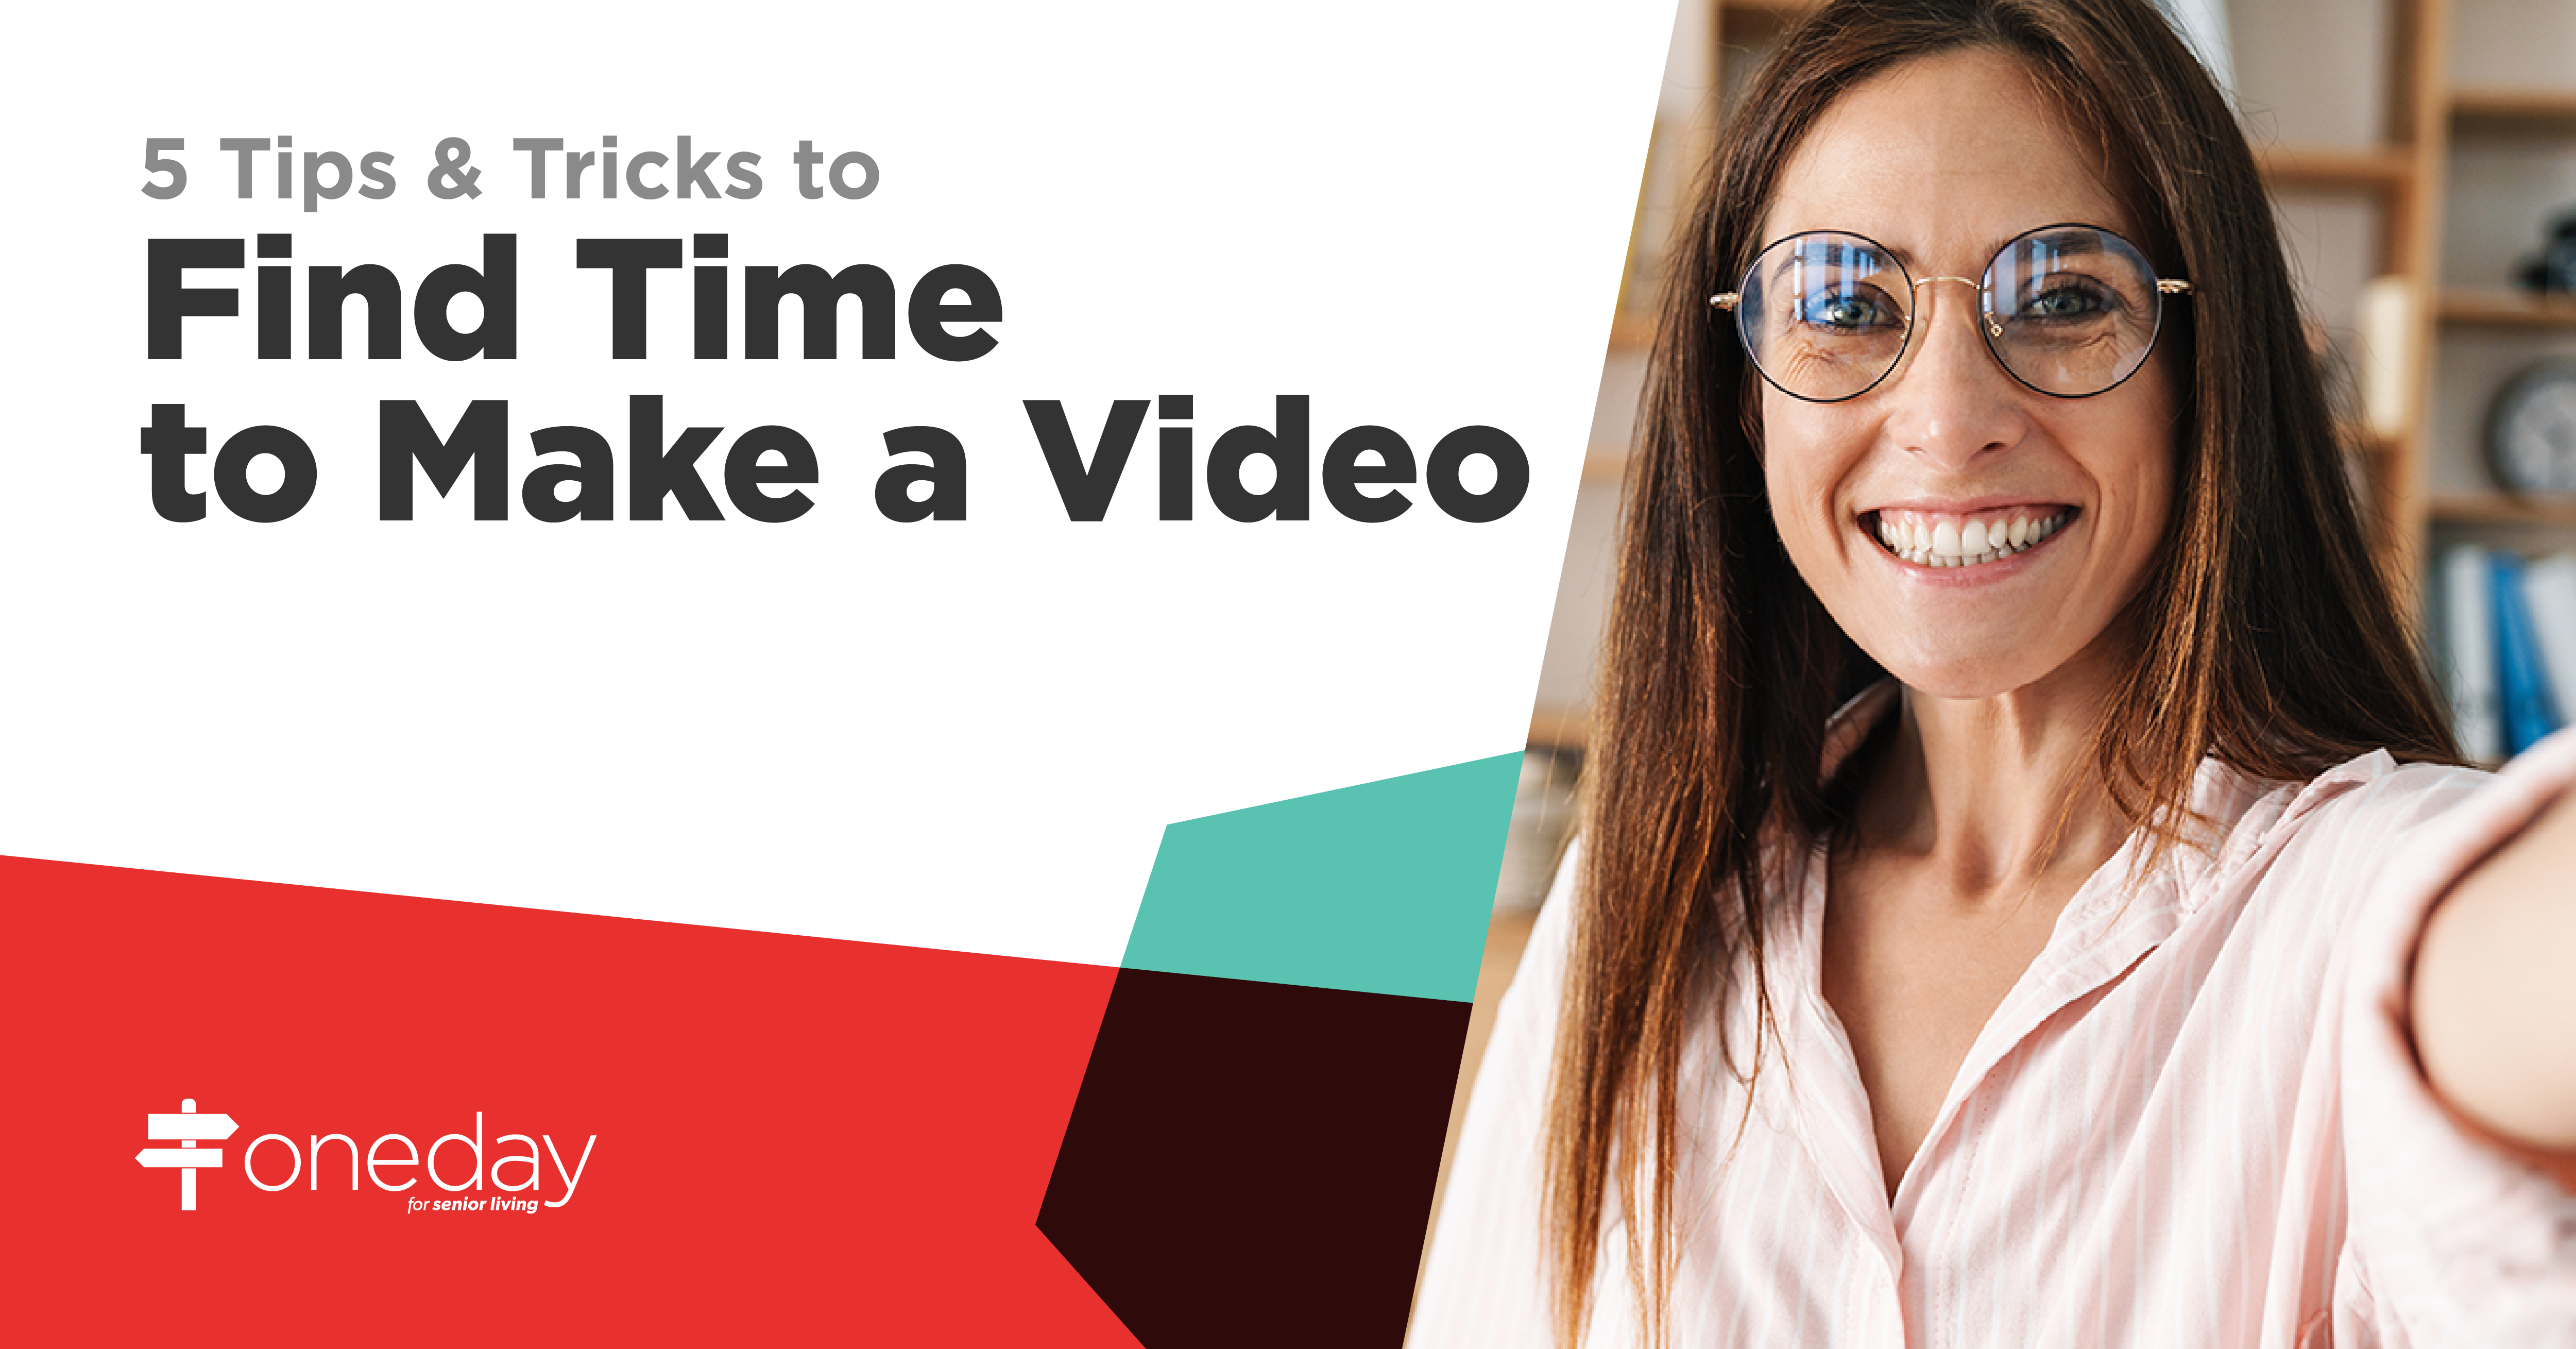 Simple tips from OneDay's team of video marketing specialists to help your senior living community create frequent and engaging video content everyday.